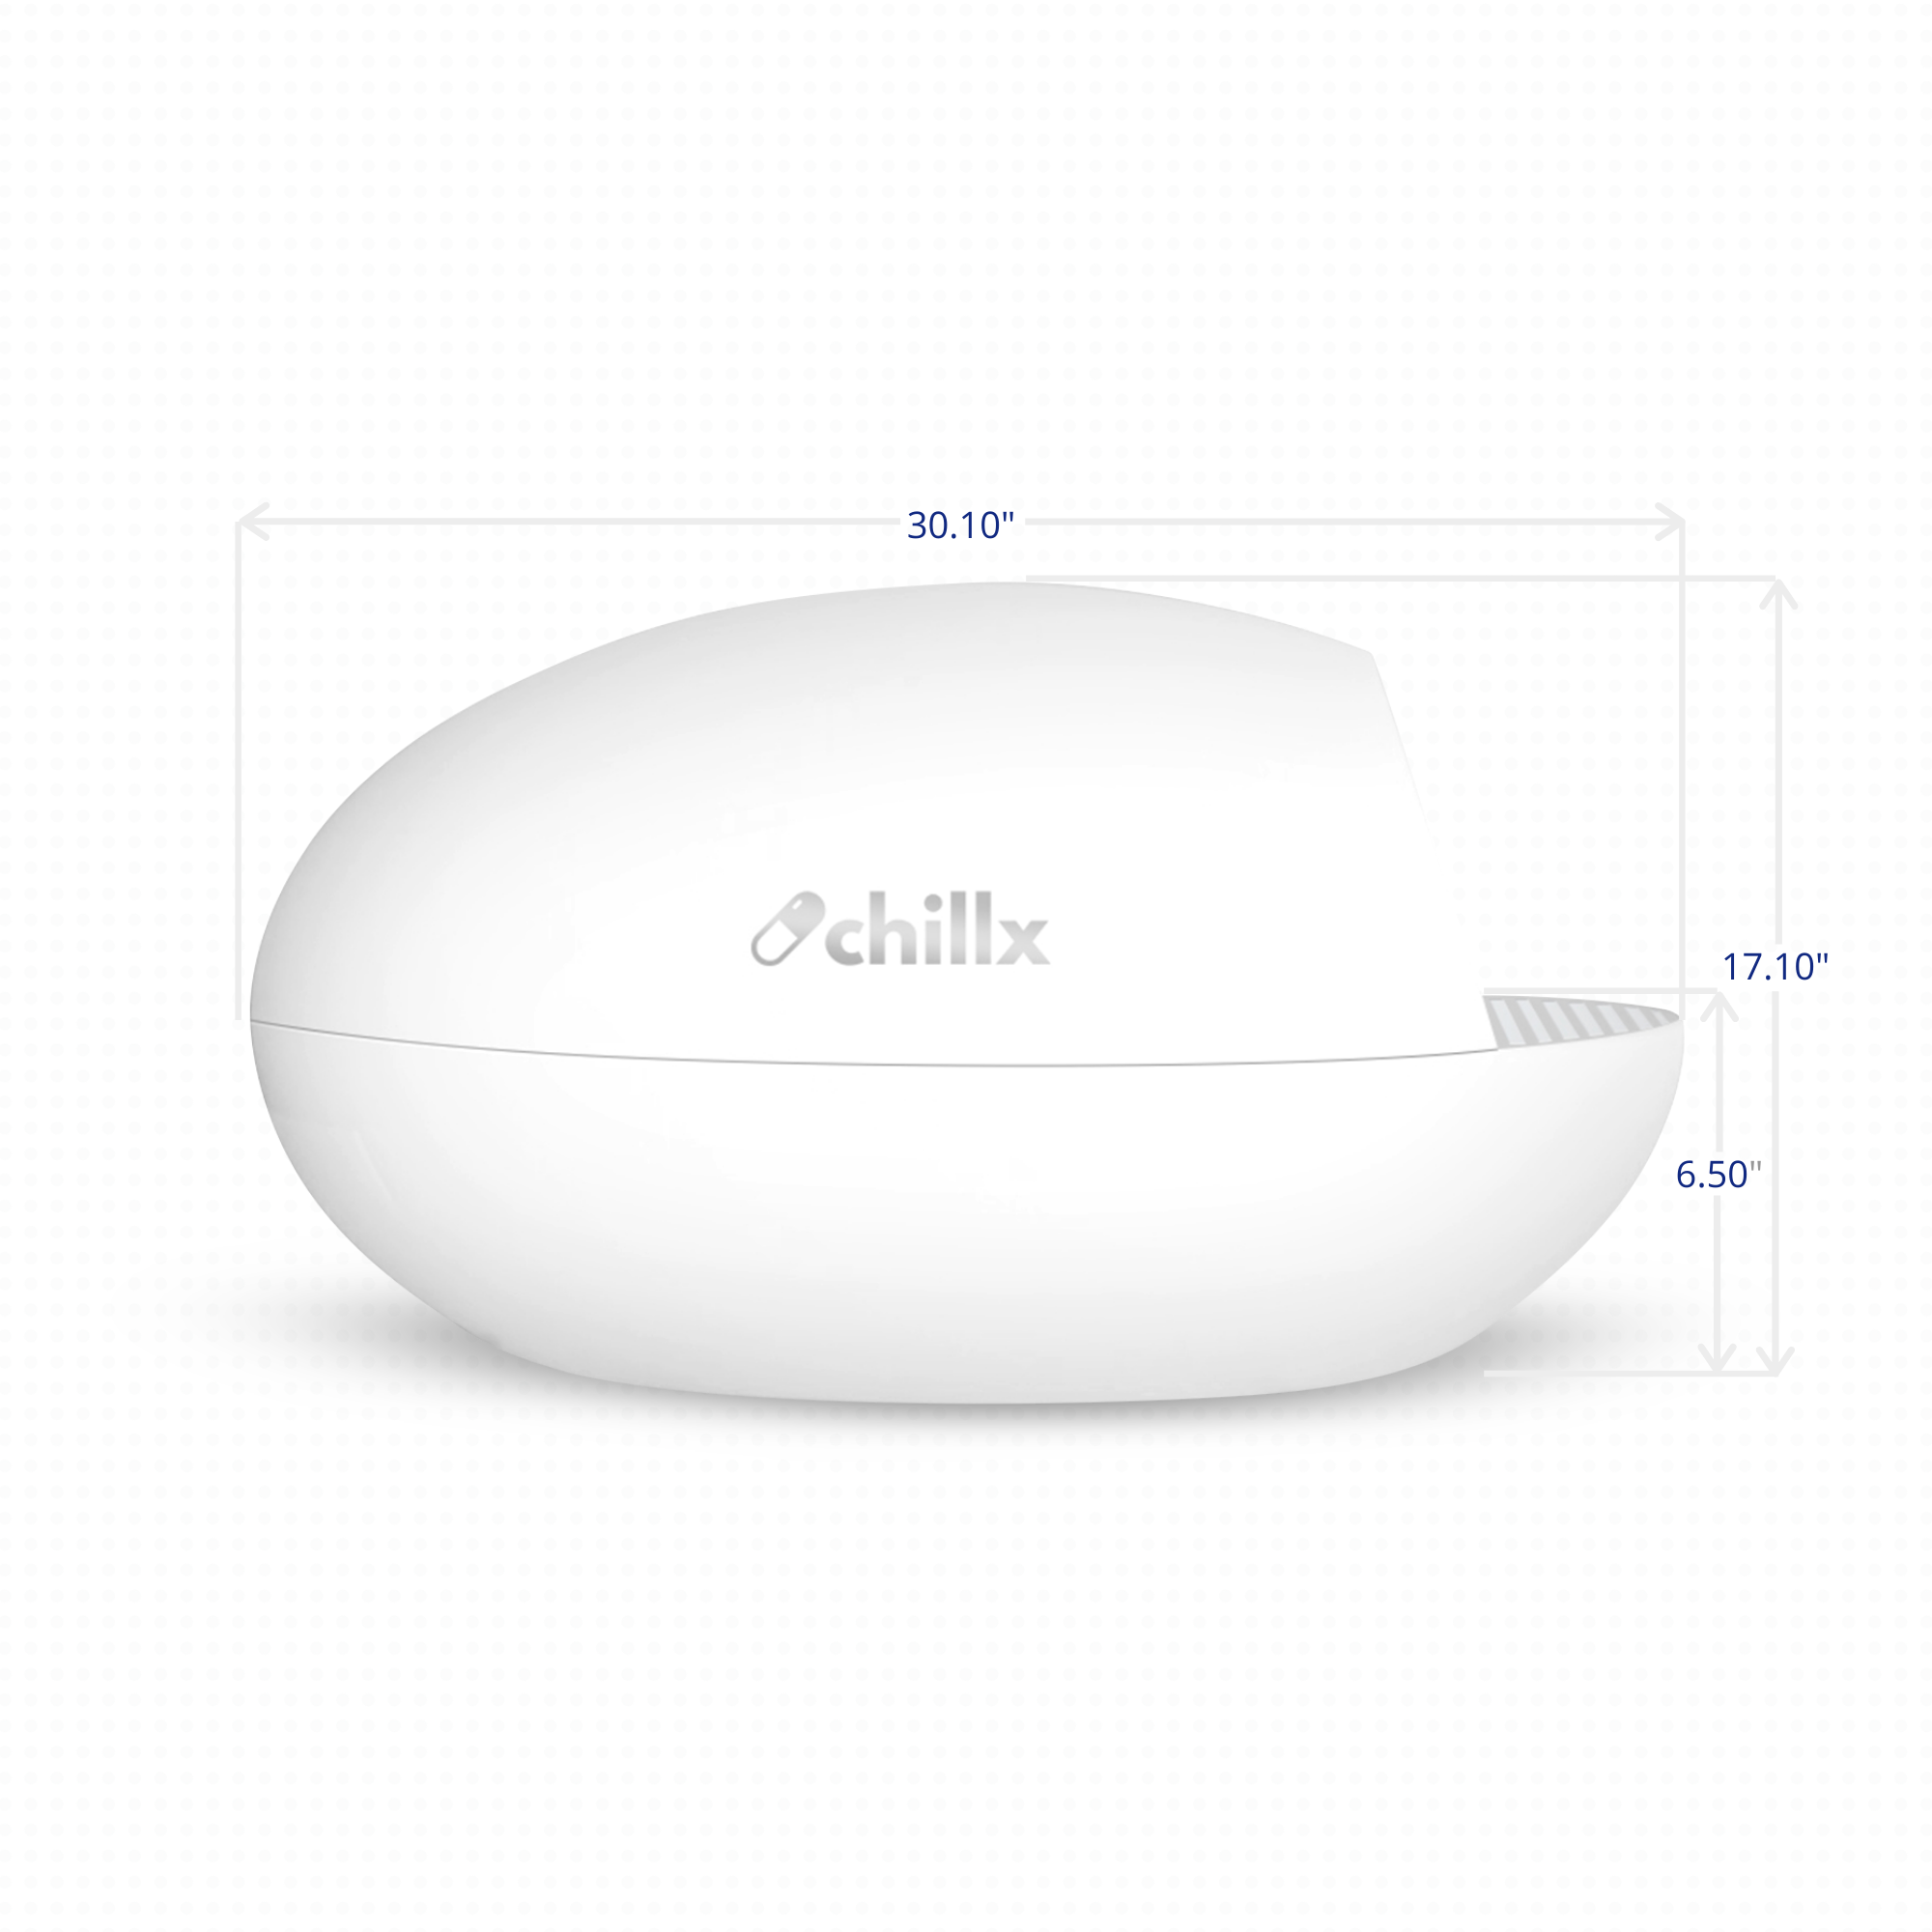 ChillX AutoEgg Automatic Litter Box Dimension